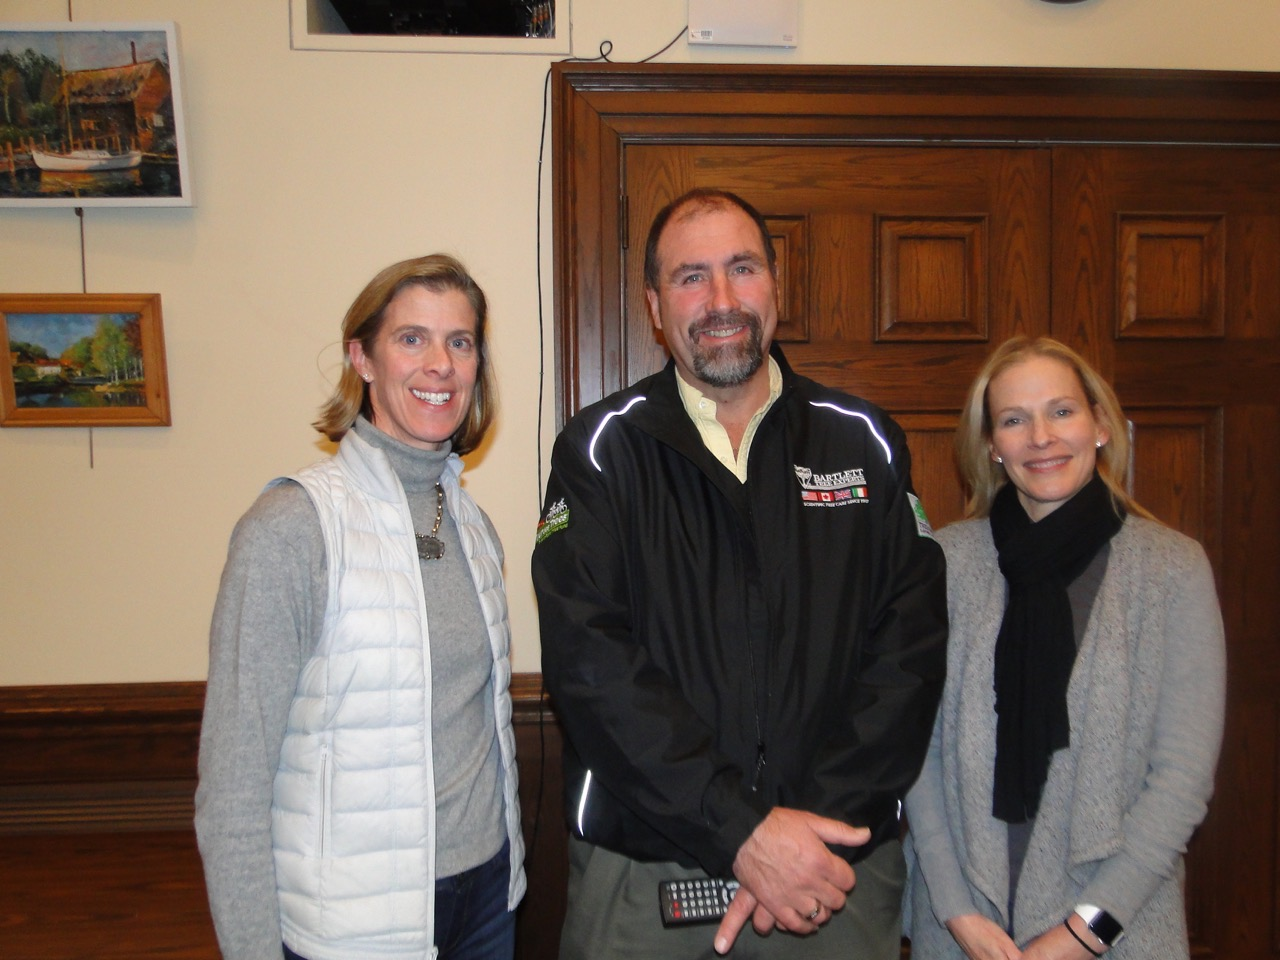 RGC president Julia Burke with Frazer Pehmoeller and RSC chair Sara Goddard